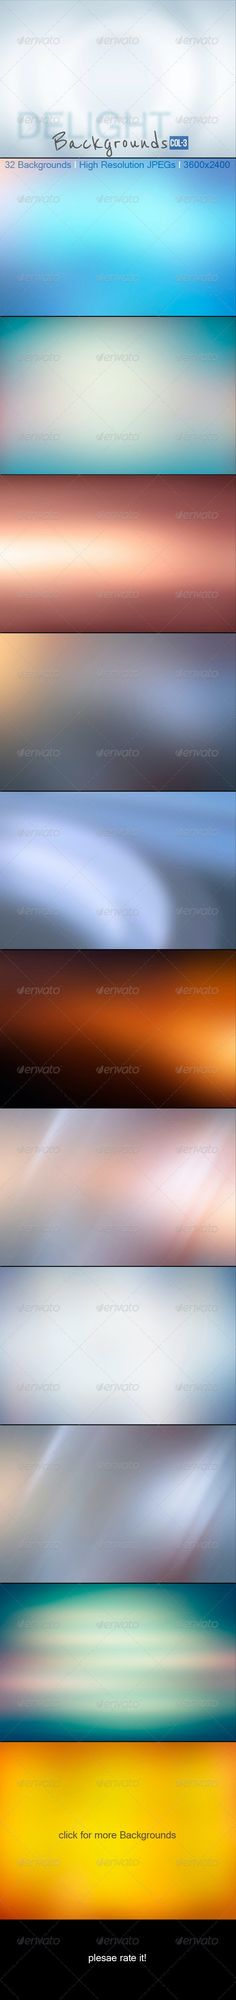 Delight Backgrounds_Vol-3 by creativeartx | GraphicRiver